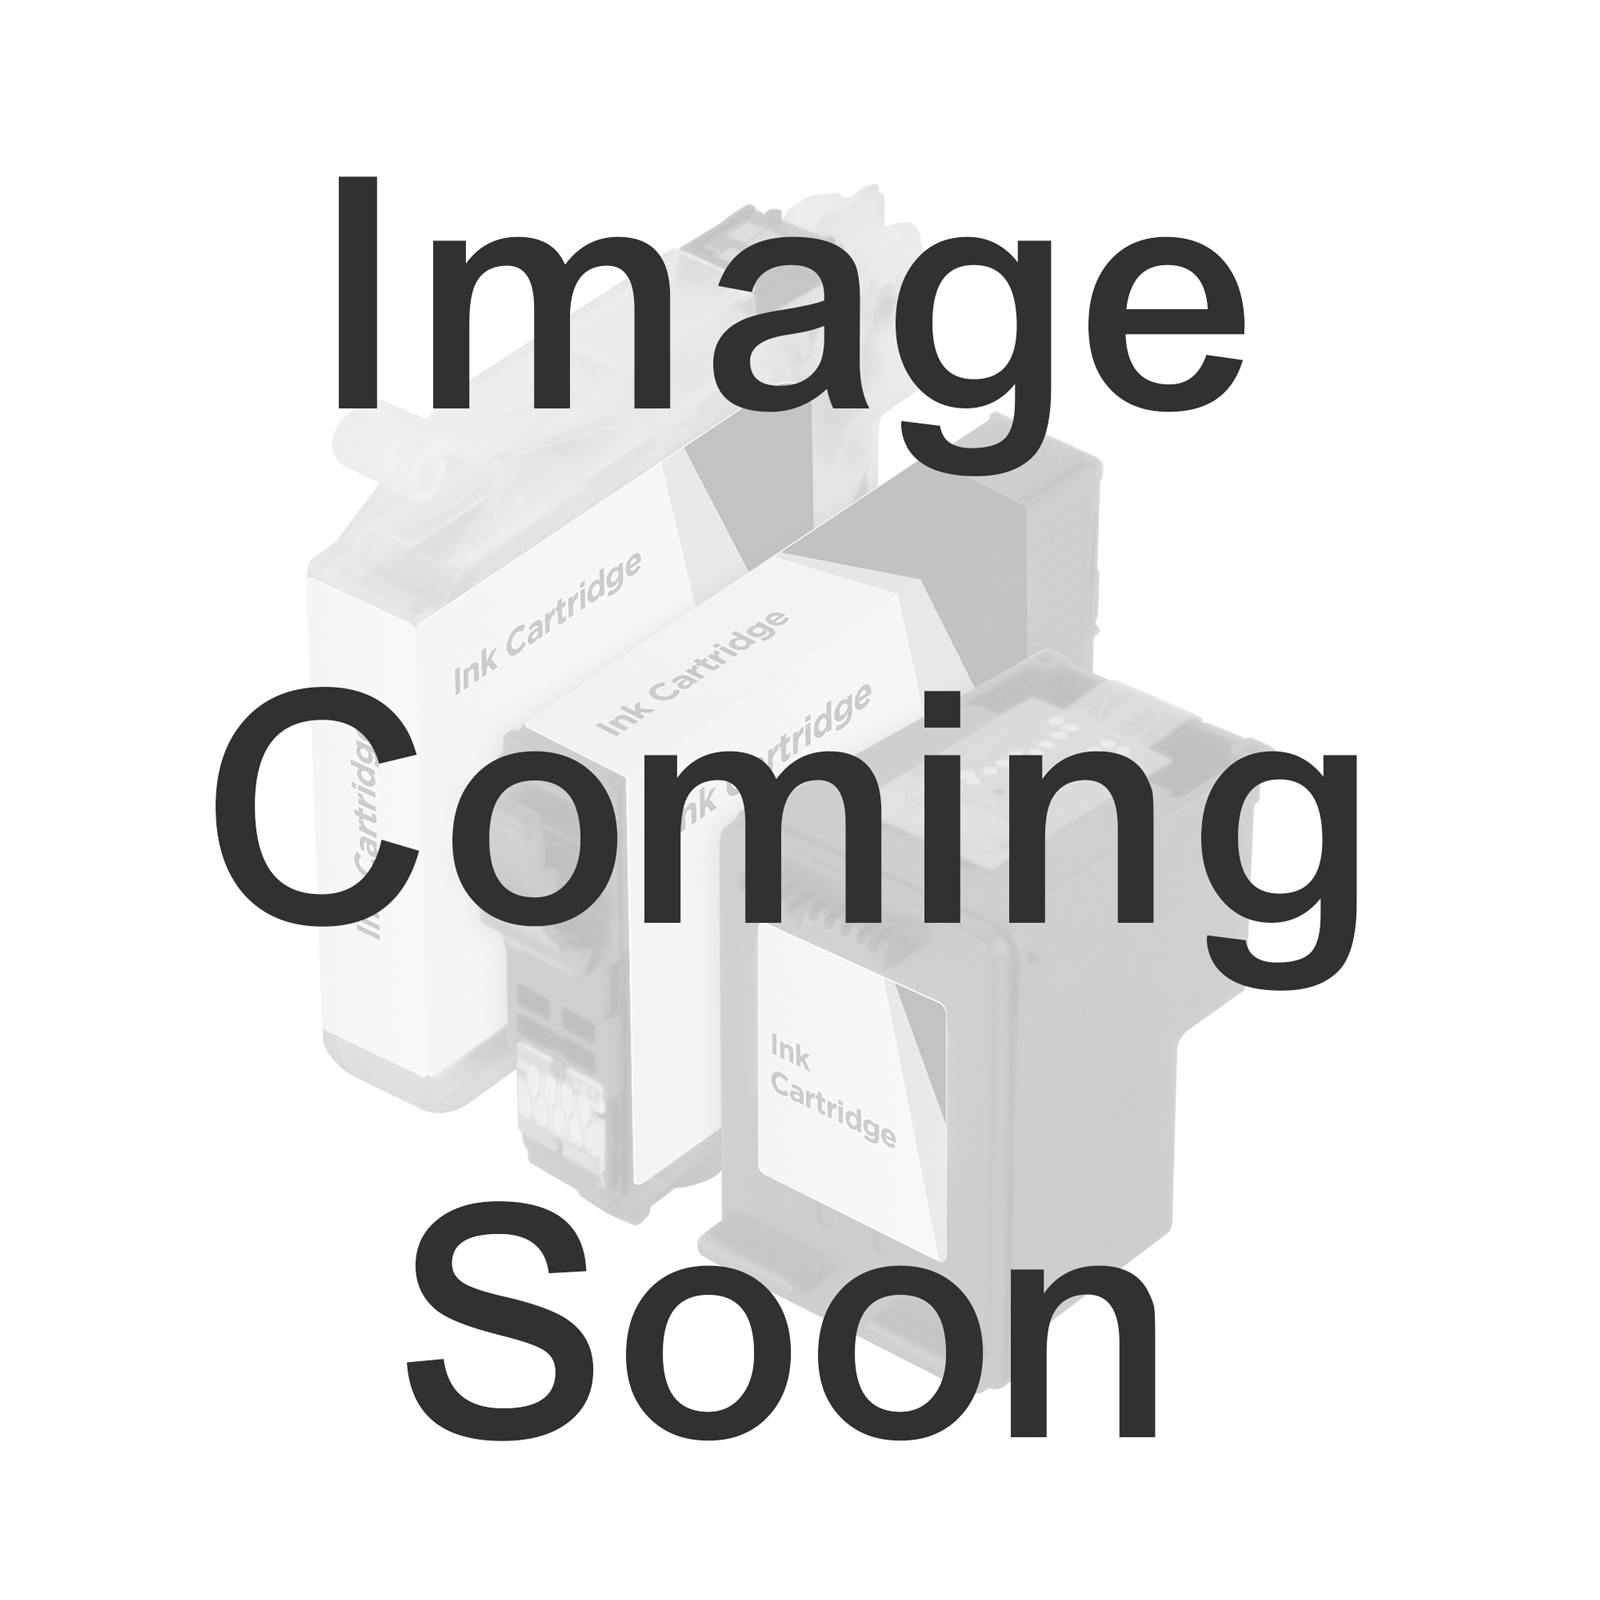 Genuine Okidata C5100 / C5150 / C5200 / C5300 / C5400 / C5510 Image Drum - Black